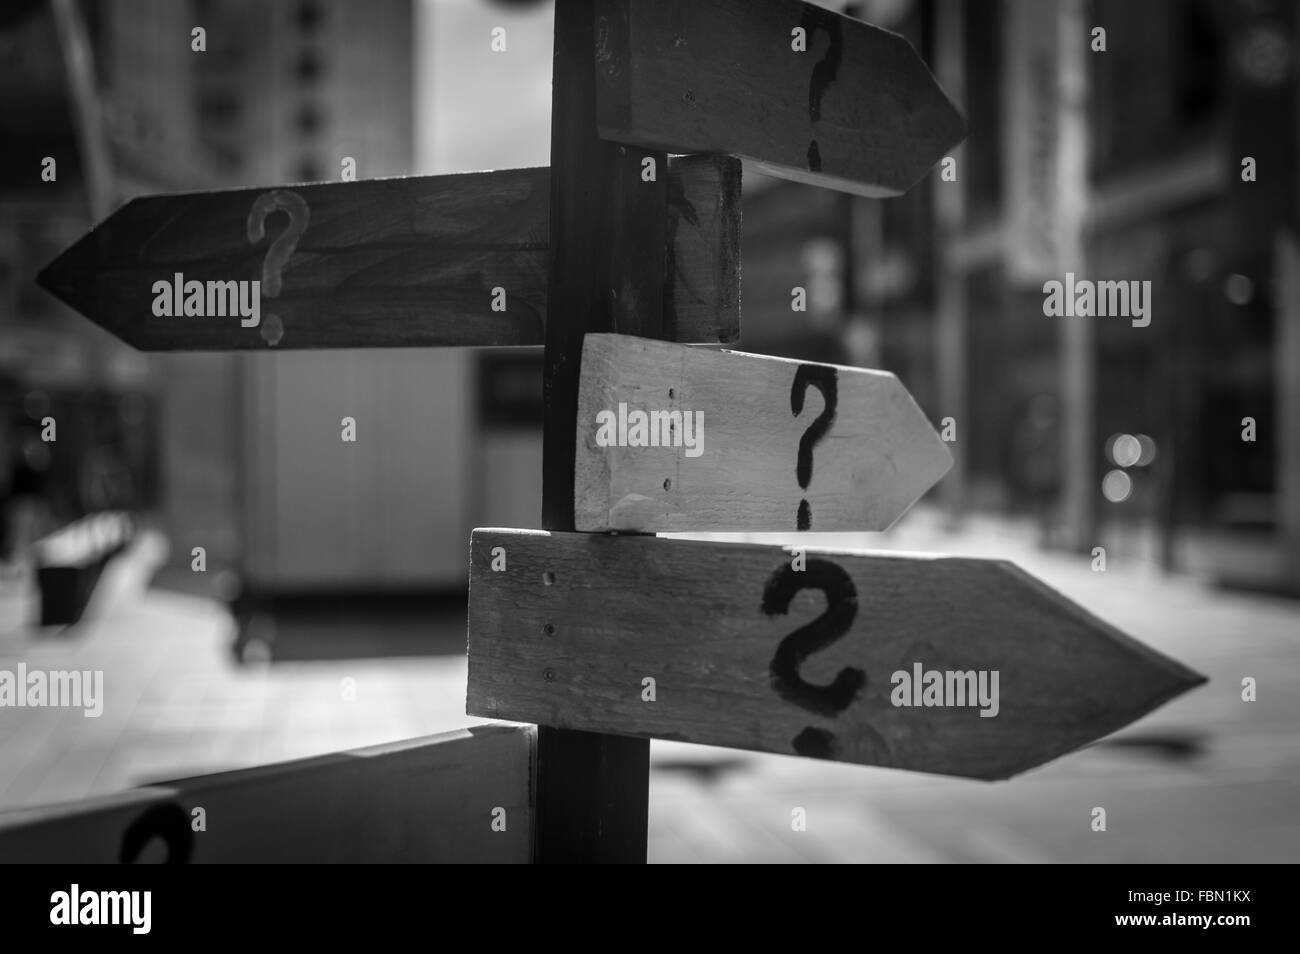 Close-Up Of Question Mark On Directional Signs On Street - Stock Image